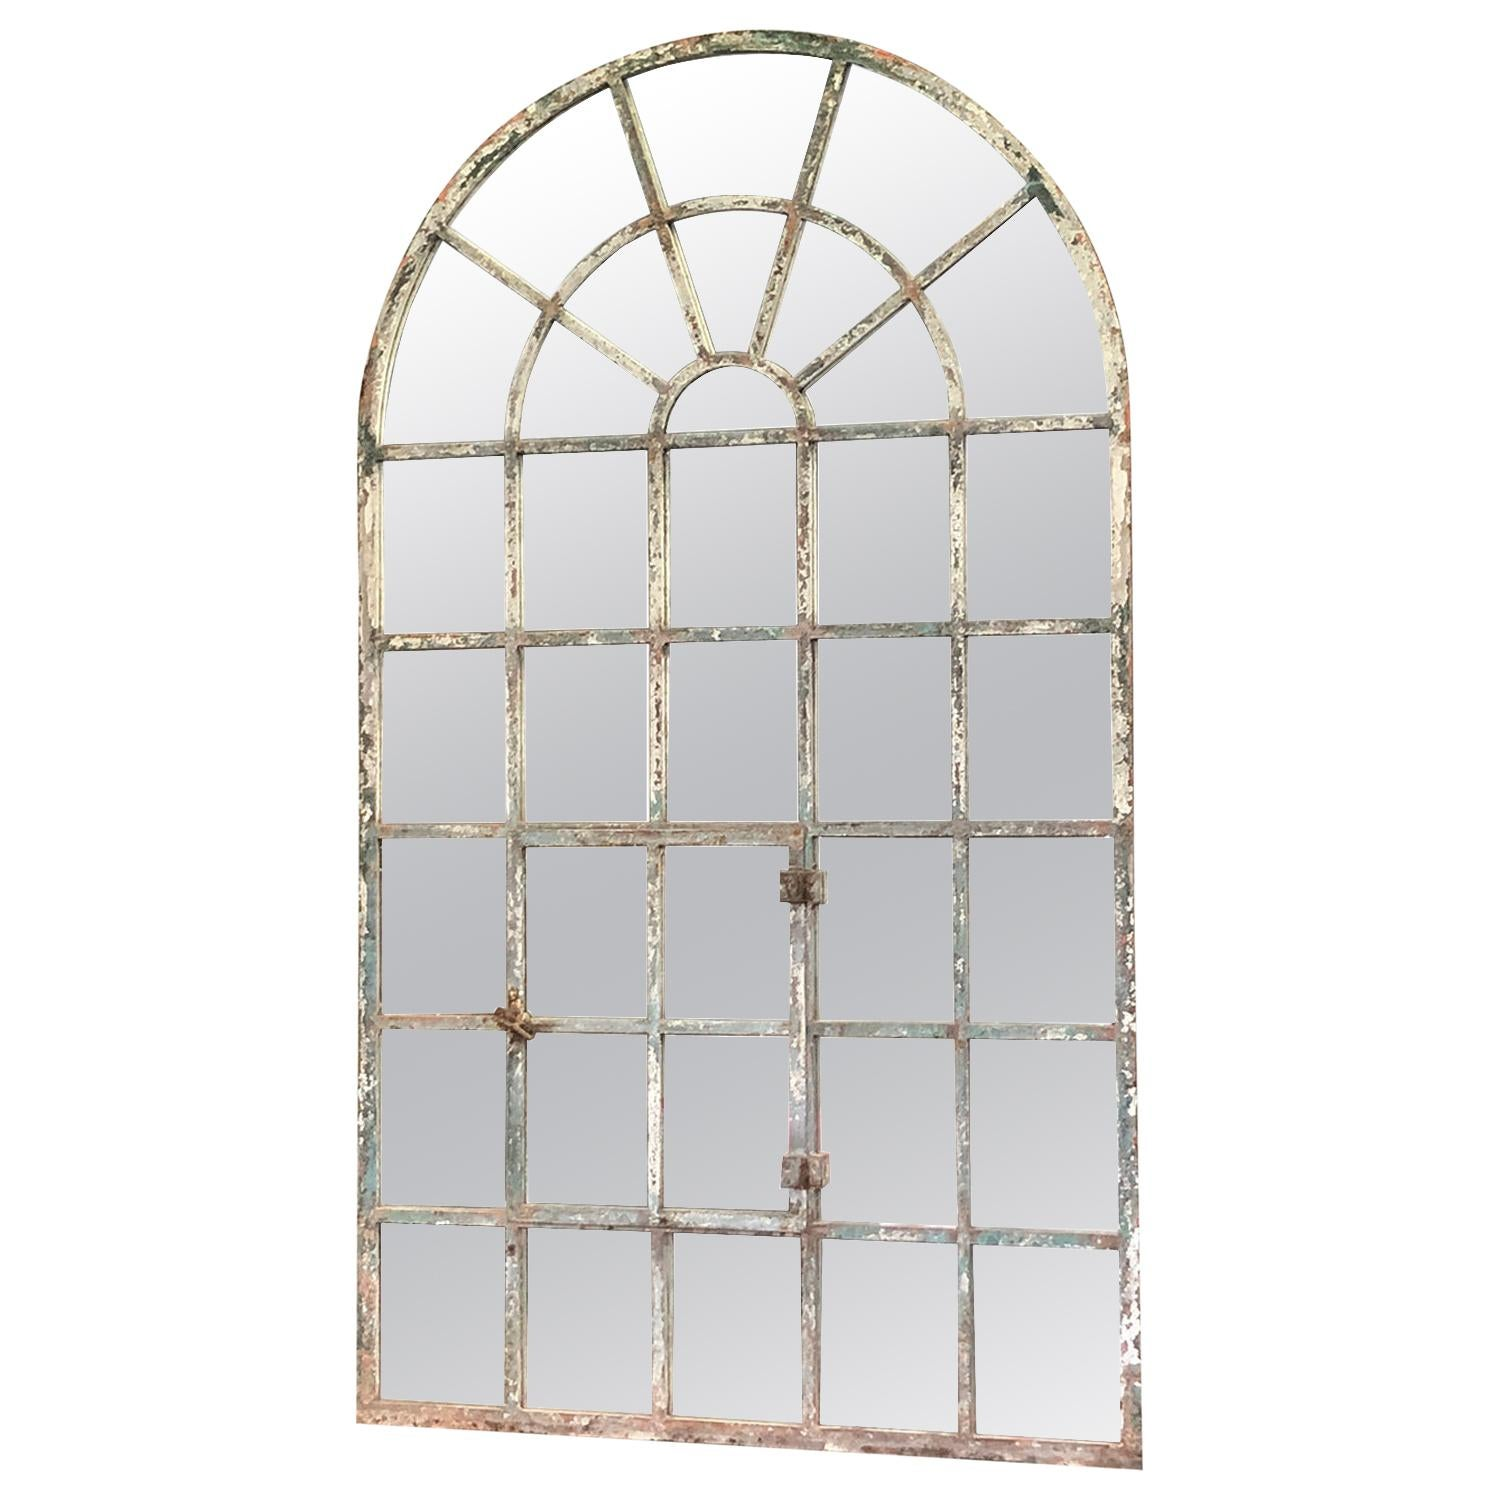 19th Century French Tuilleries Metal Wall Mirror, Antique Orangerie Iron Window